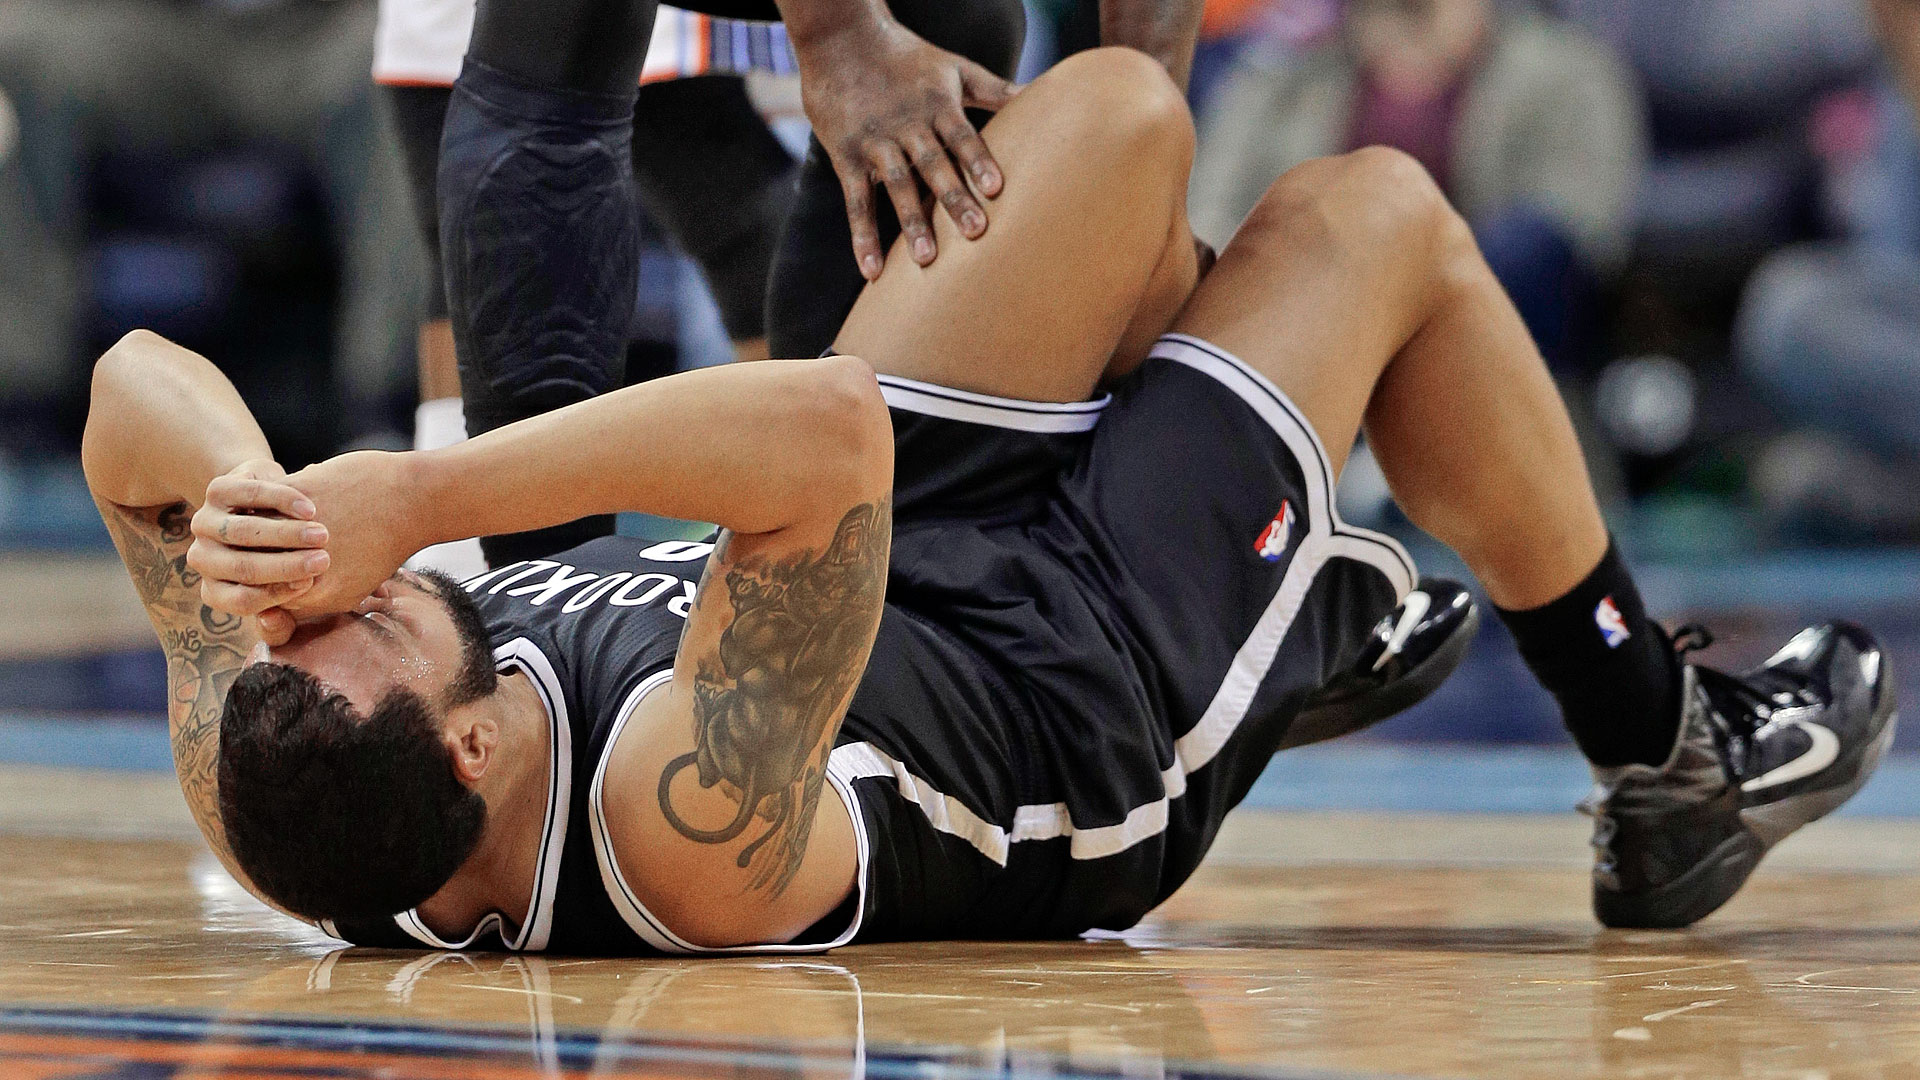 Deron Williams-112013-AP-FTR.jpg